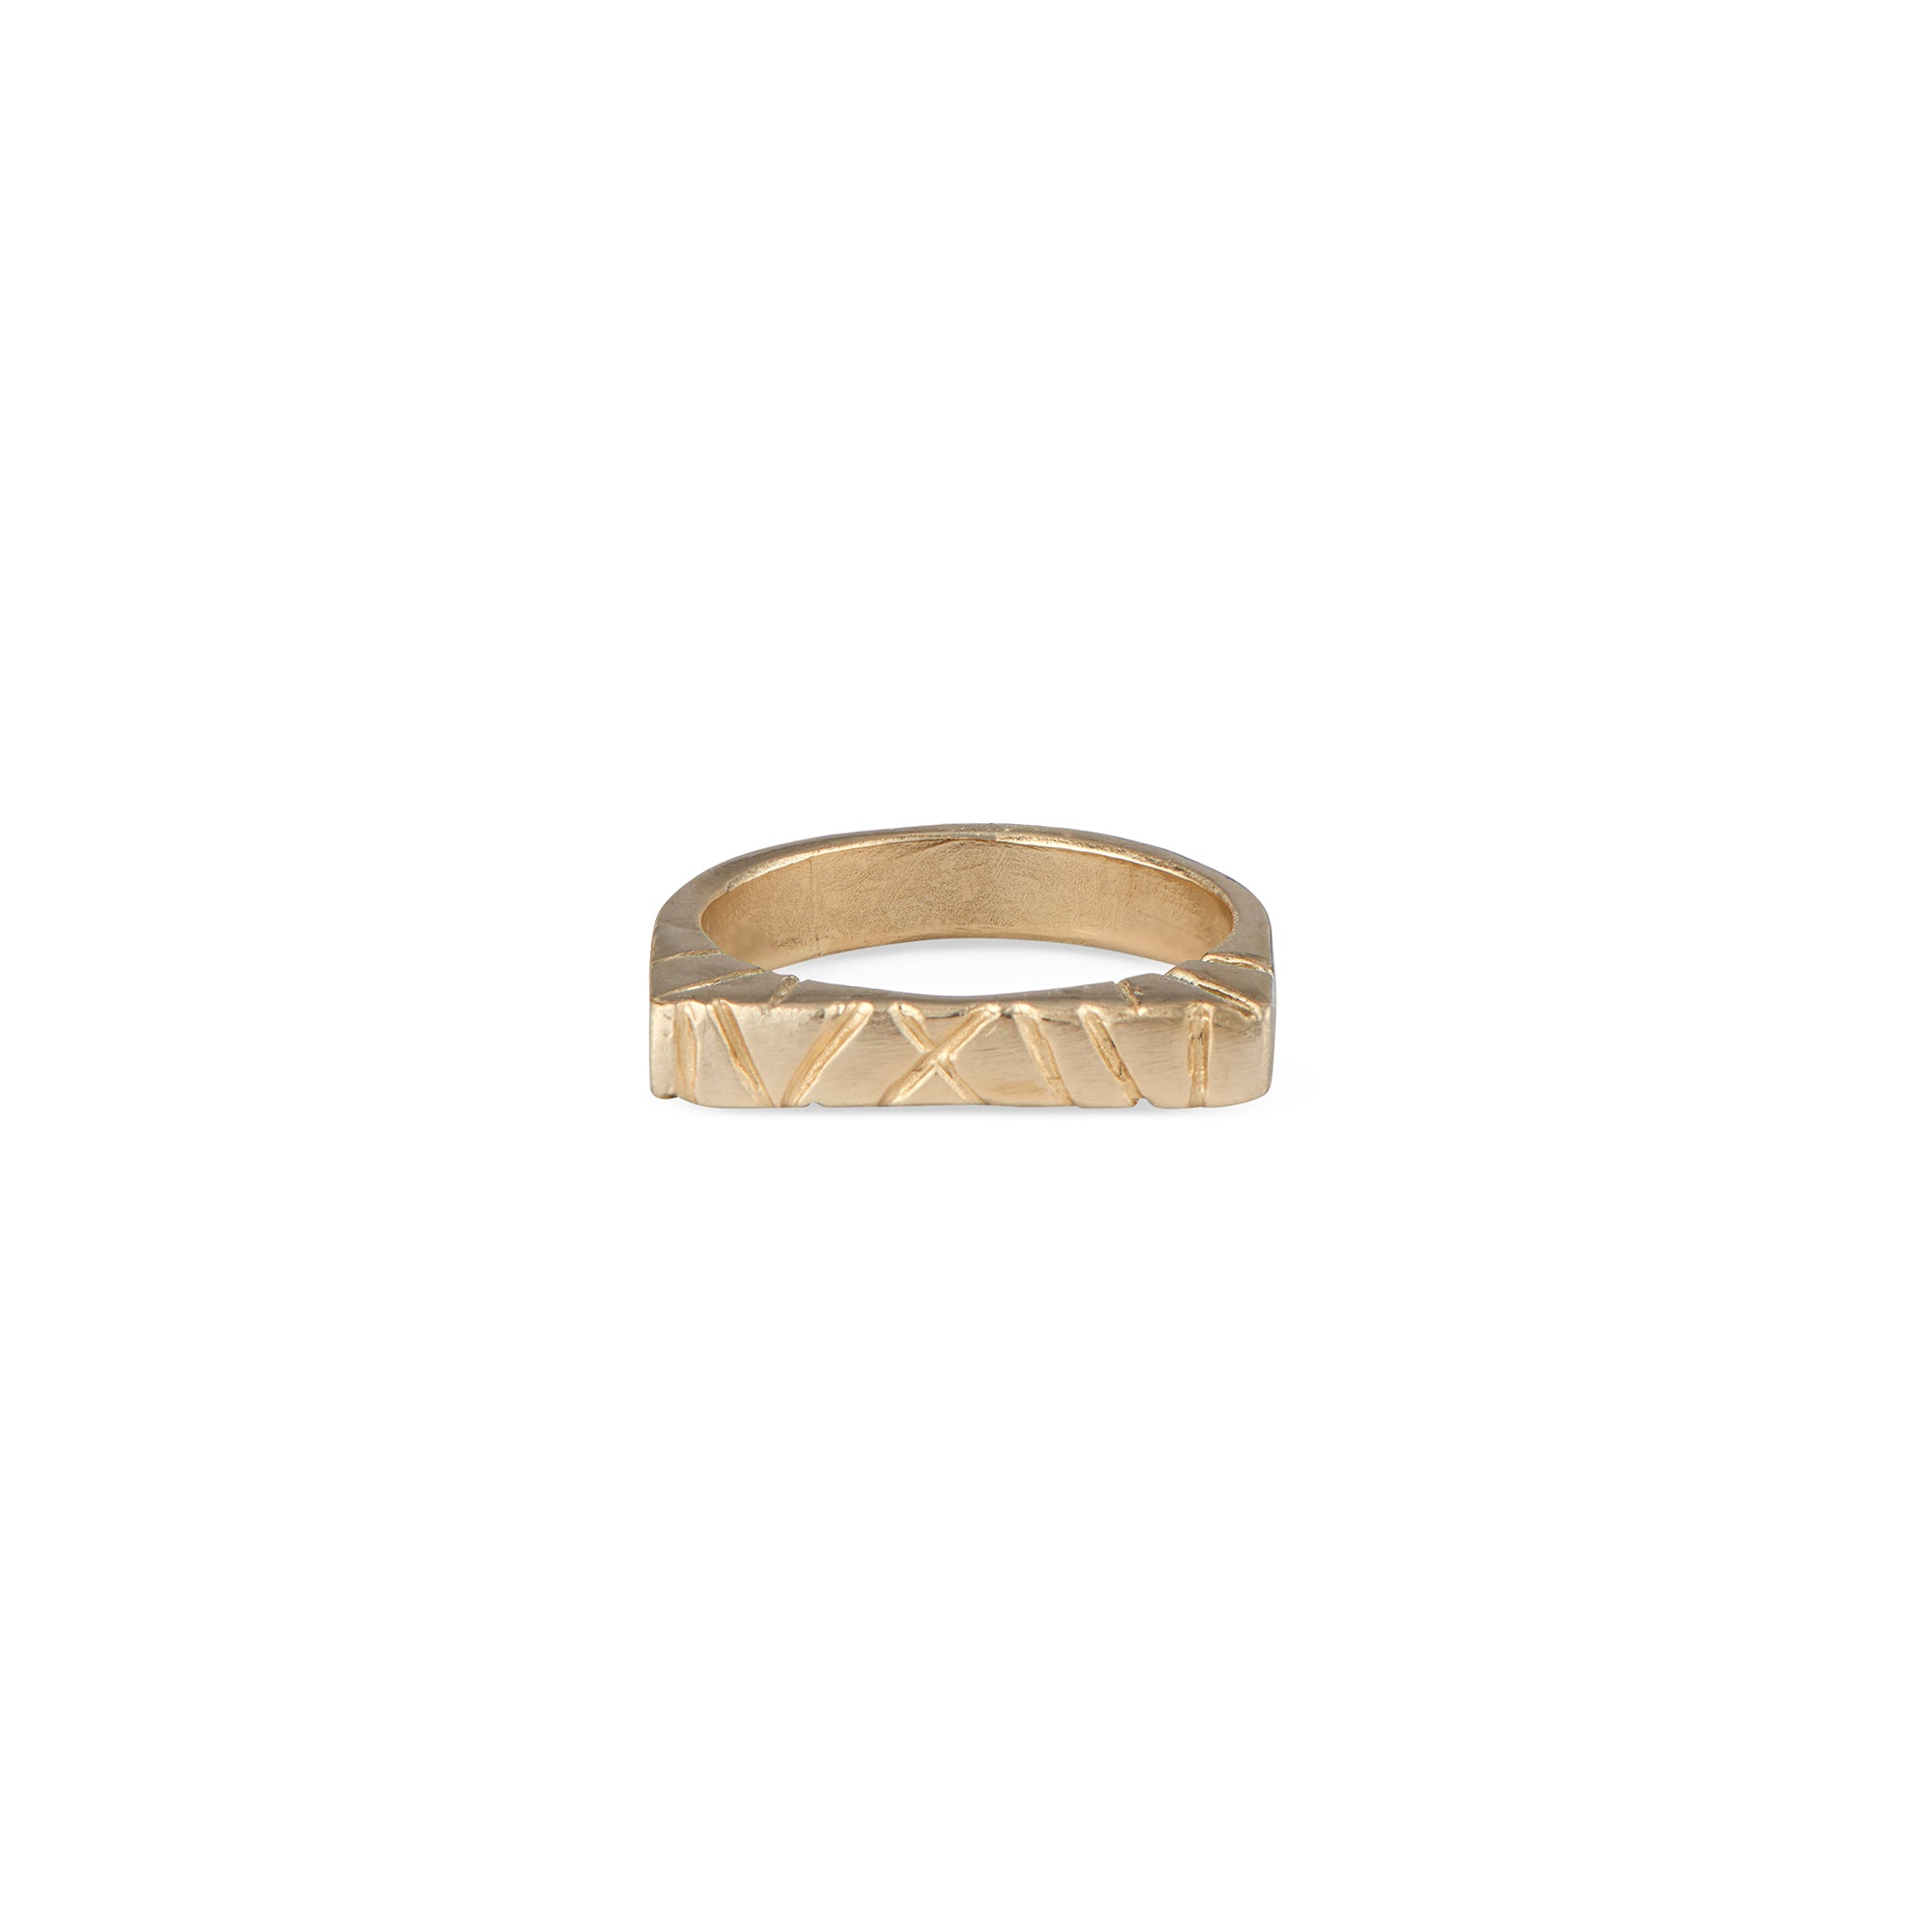 The Natalie McMillan 14k flat top is an amazing every day ring! It is incredibly comfortable, stackable, and lightweight. As always, it is handcrafted from start to finish and is a truly unique piece.